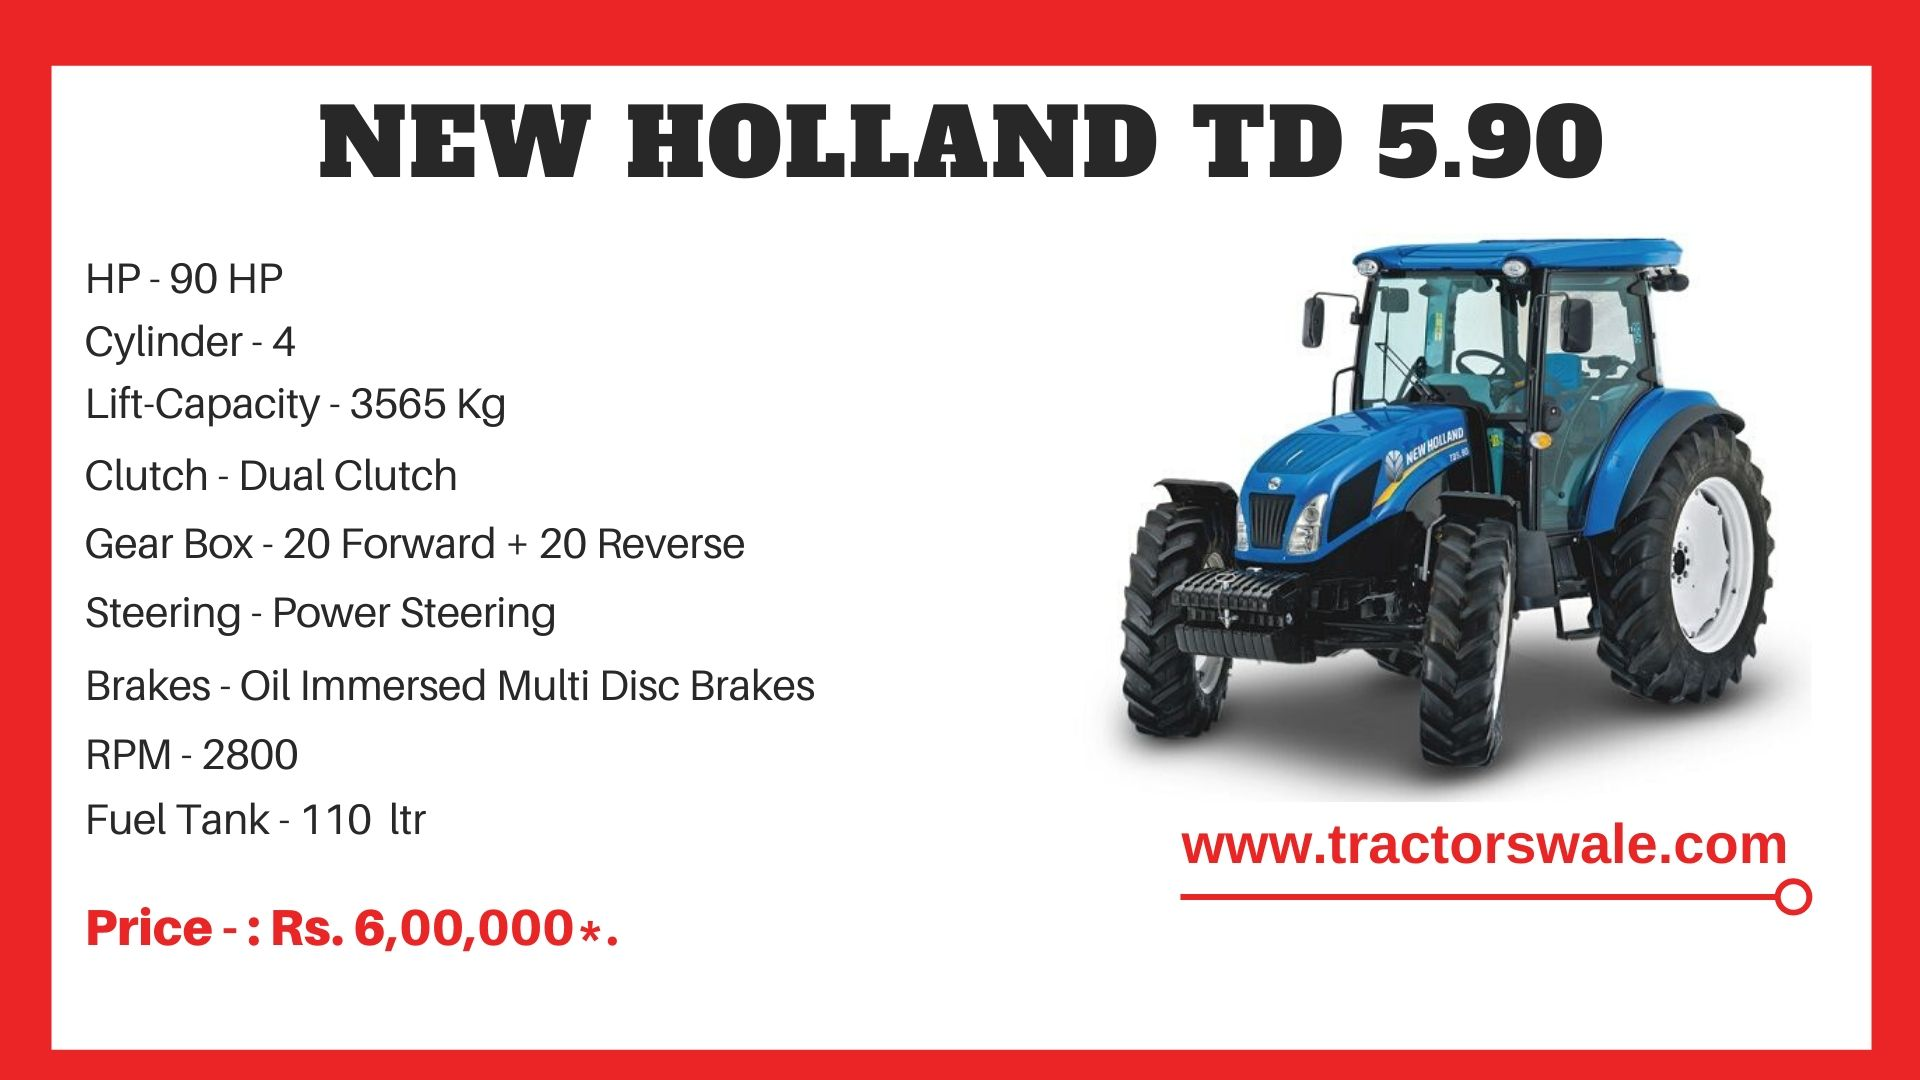 New Holland TD 5.90 tractor price